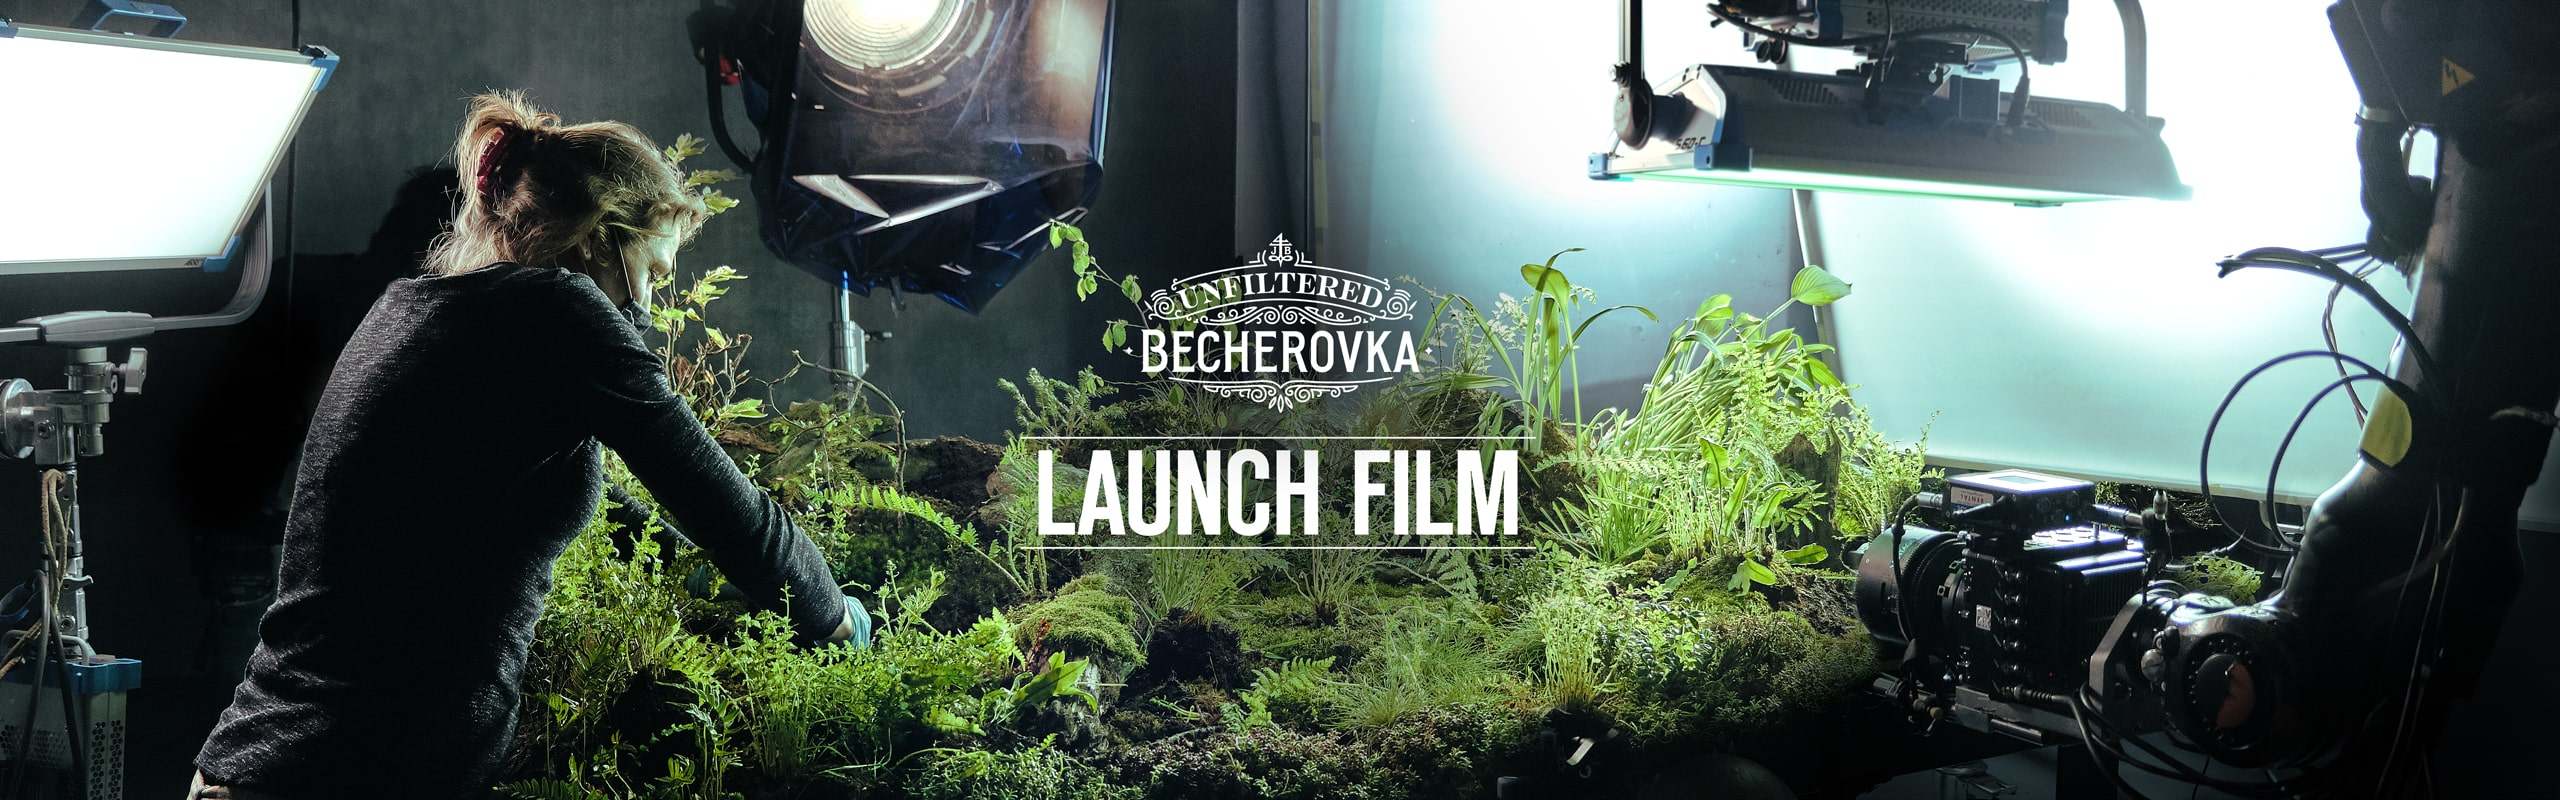 Cocoon Prague Create Pernod Ricard's Becherovka Unfiltered Launch Video